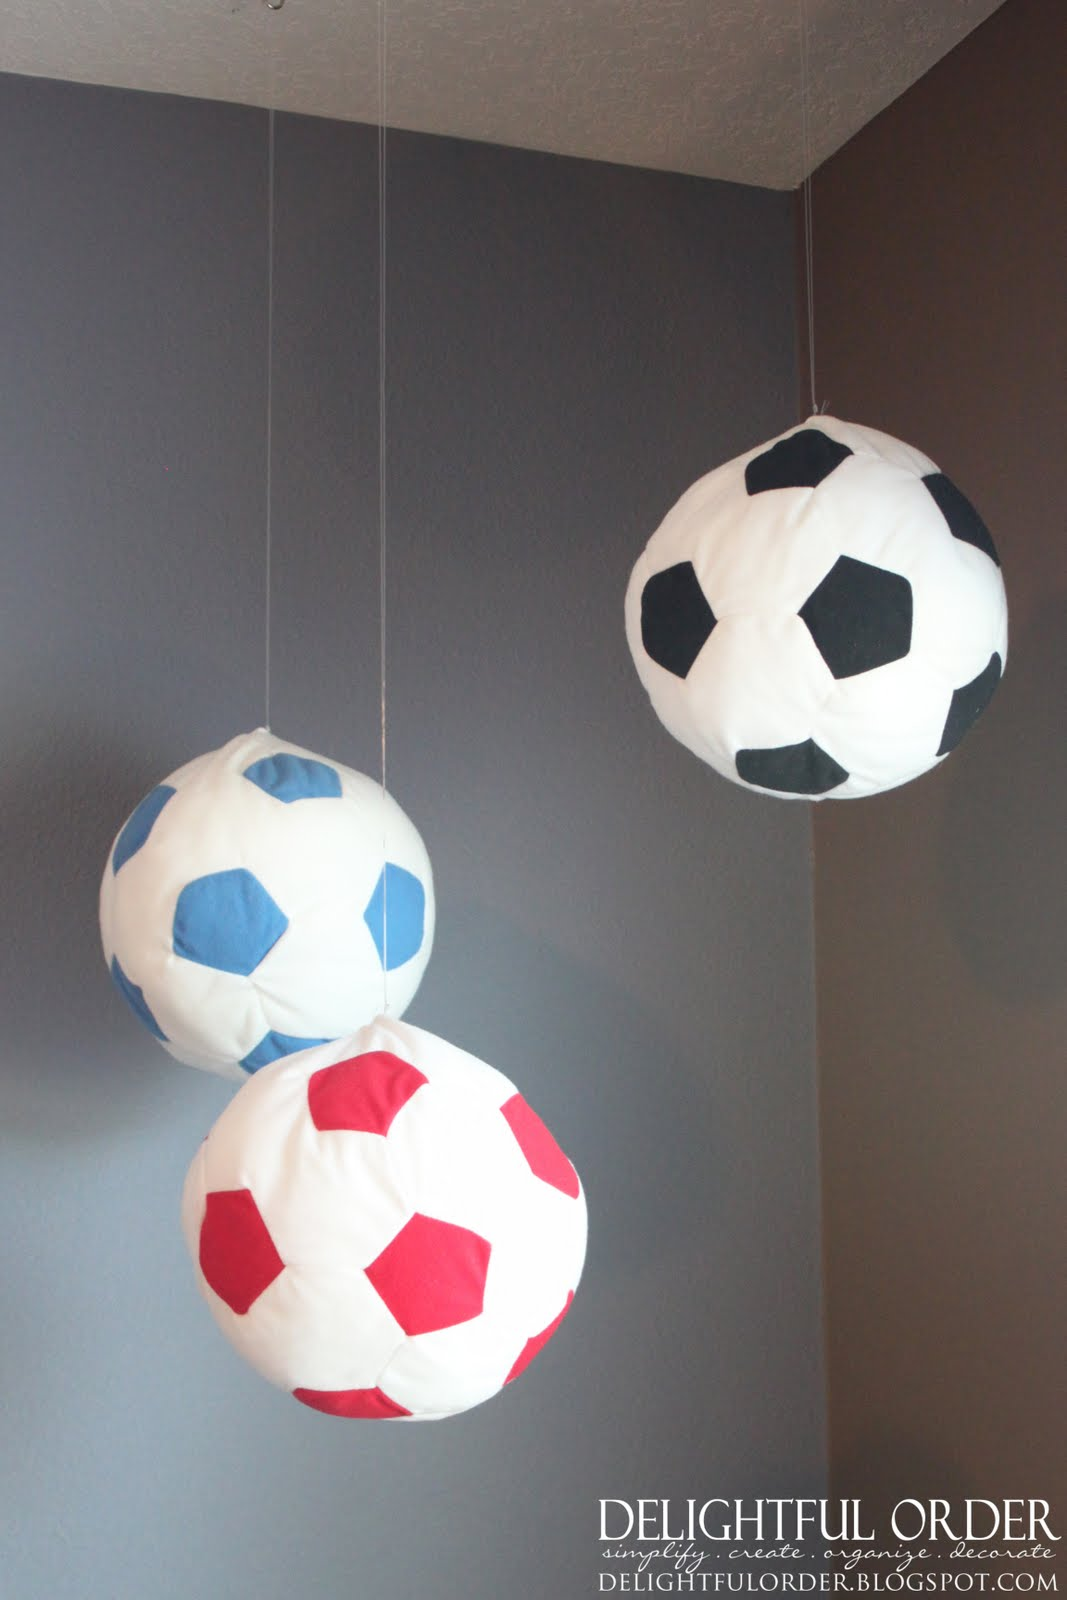 Delightful Order Boy S Sports Room Decor Clients Home